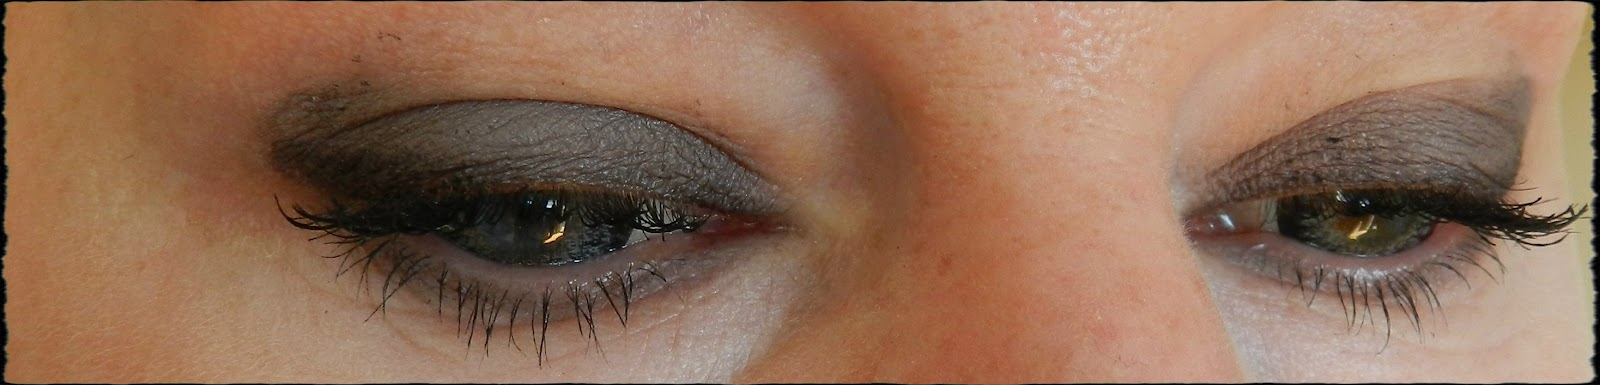 Unfade what fades: Maybelline Color Tattoo eyeshadow in #40 ...